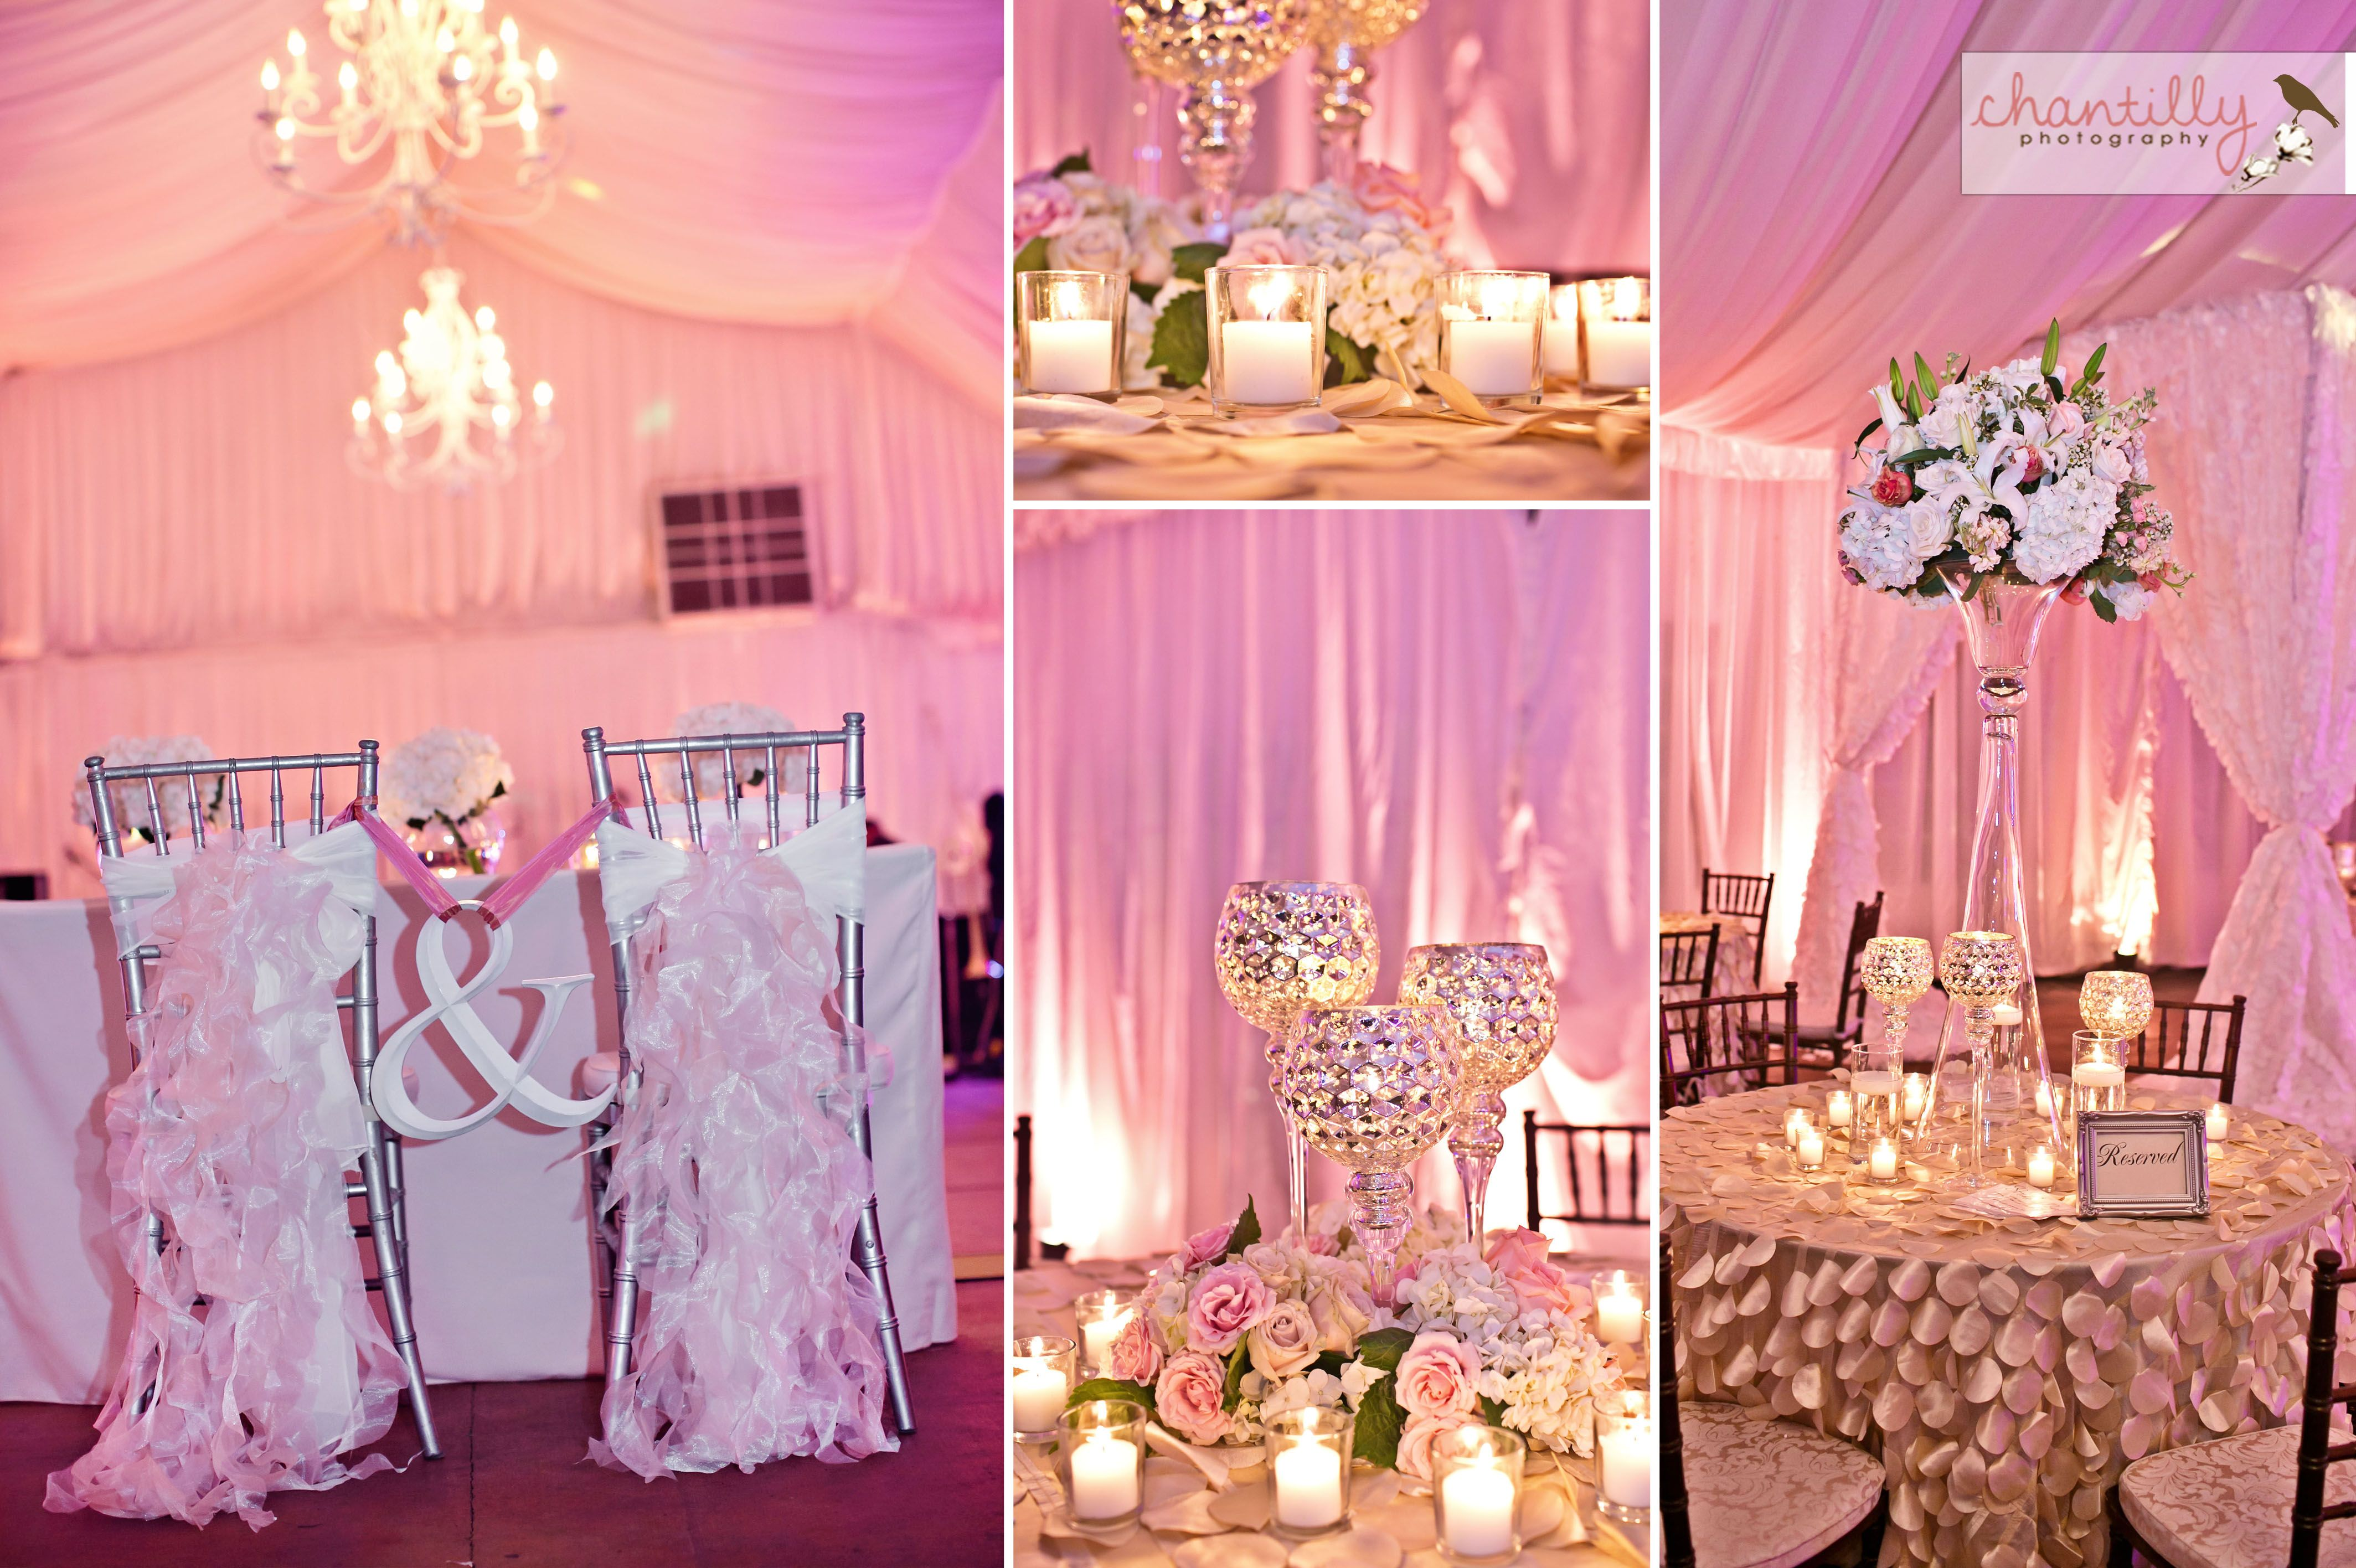 Rose Gold Wedding Ideas For Ceremony Reception Décor: Grande Pavillion With Rose Gold Uplighting- Nottoway